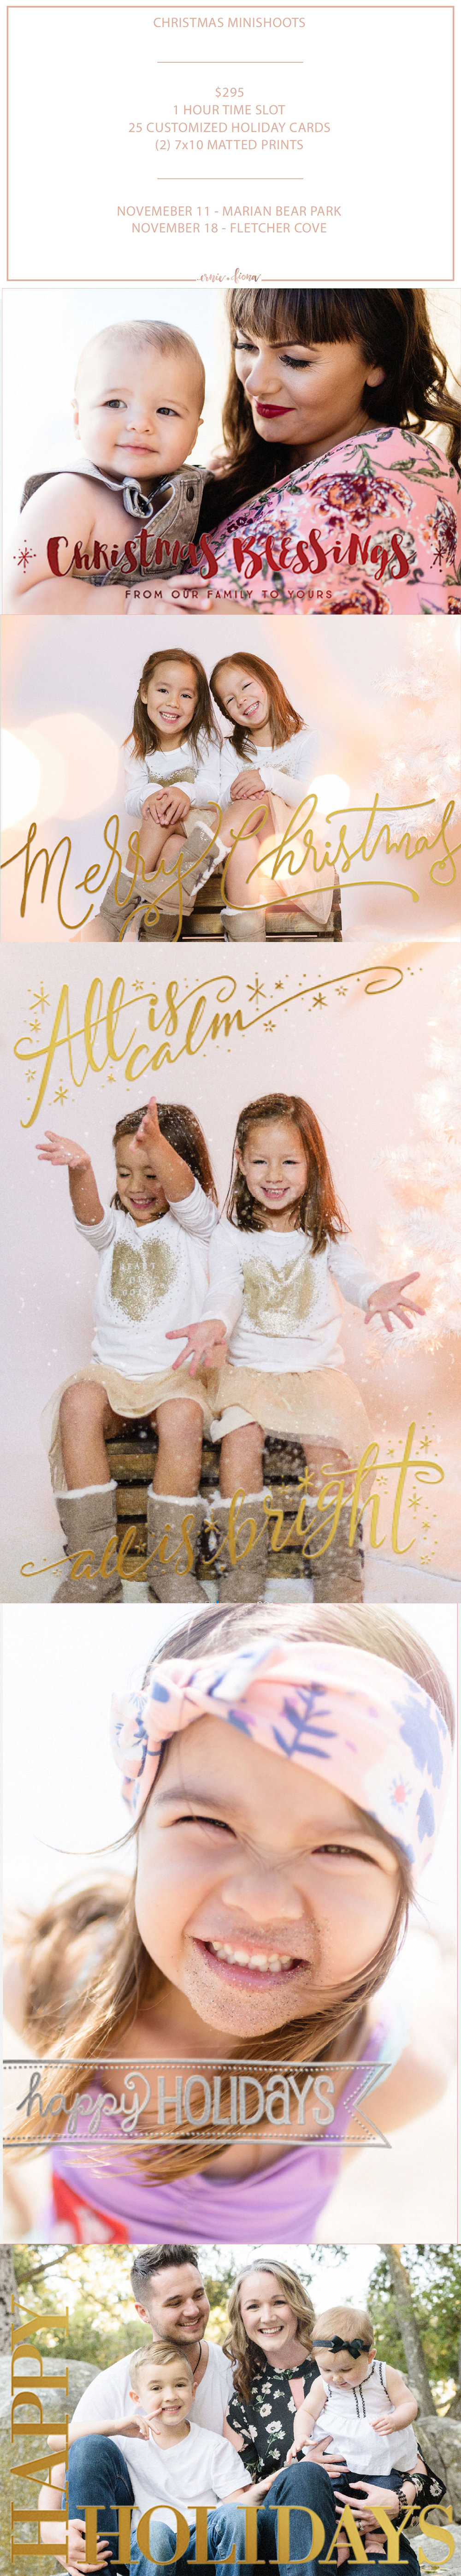 San Diego Portrait Photogrpahers | Christmas Mini Shoots | Christmas Photos